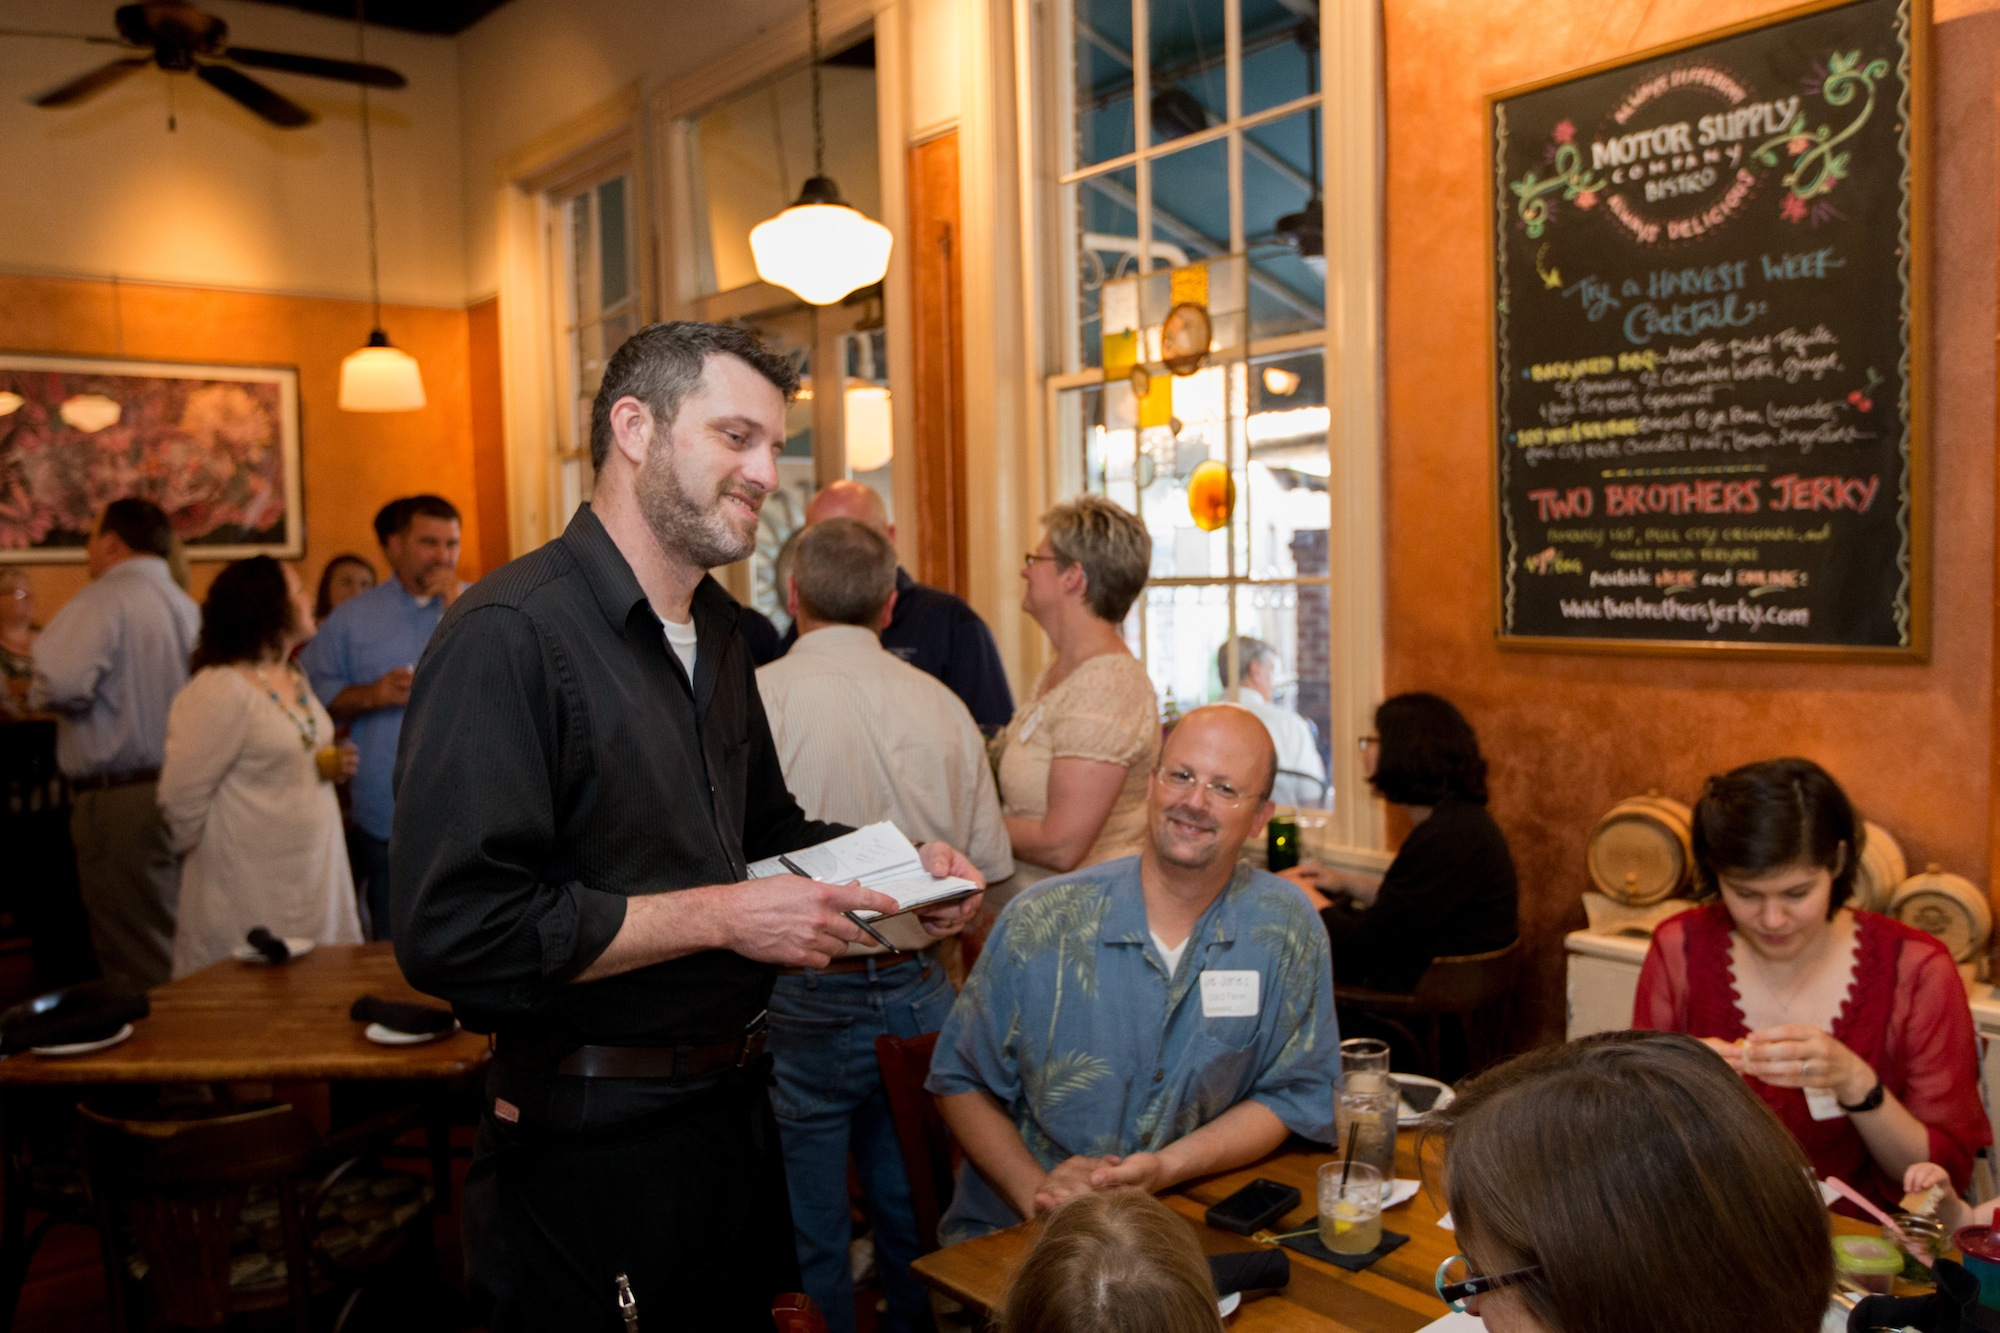 Motor Supply Co. Bistro Celebrates 25 Years During Fall Harvest Week, Oct. 7-12, 2014